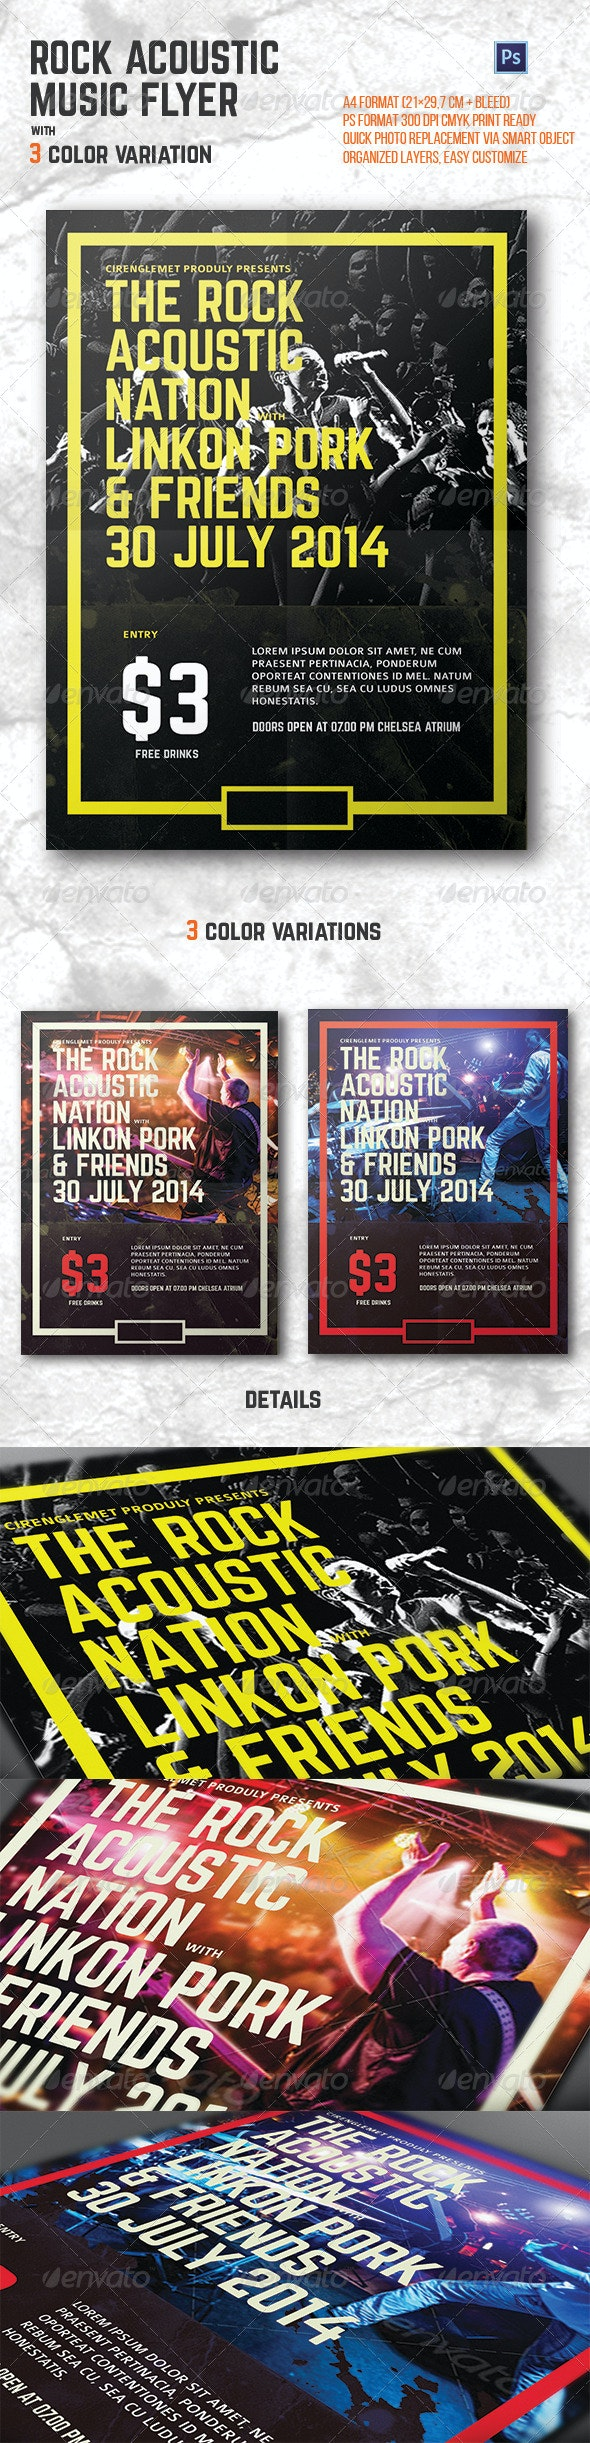 Rock Acoustic Music Flyer - Concerts Events